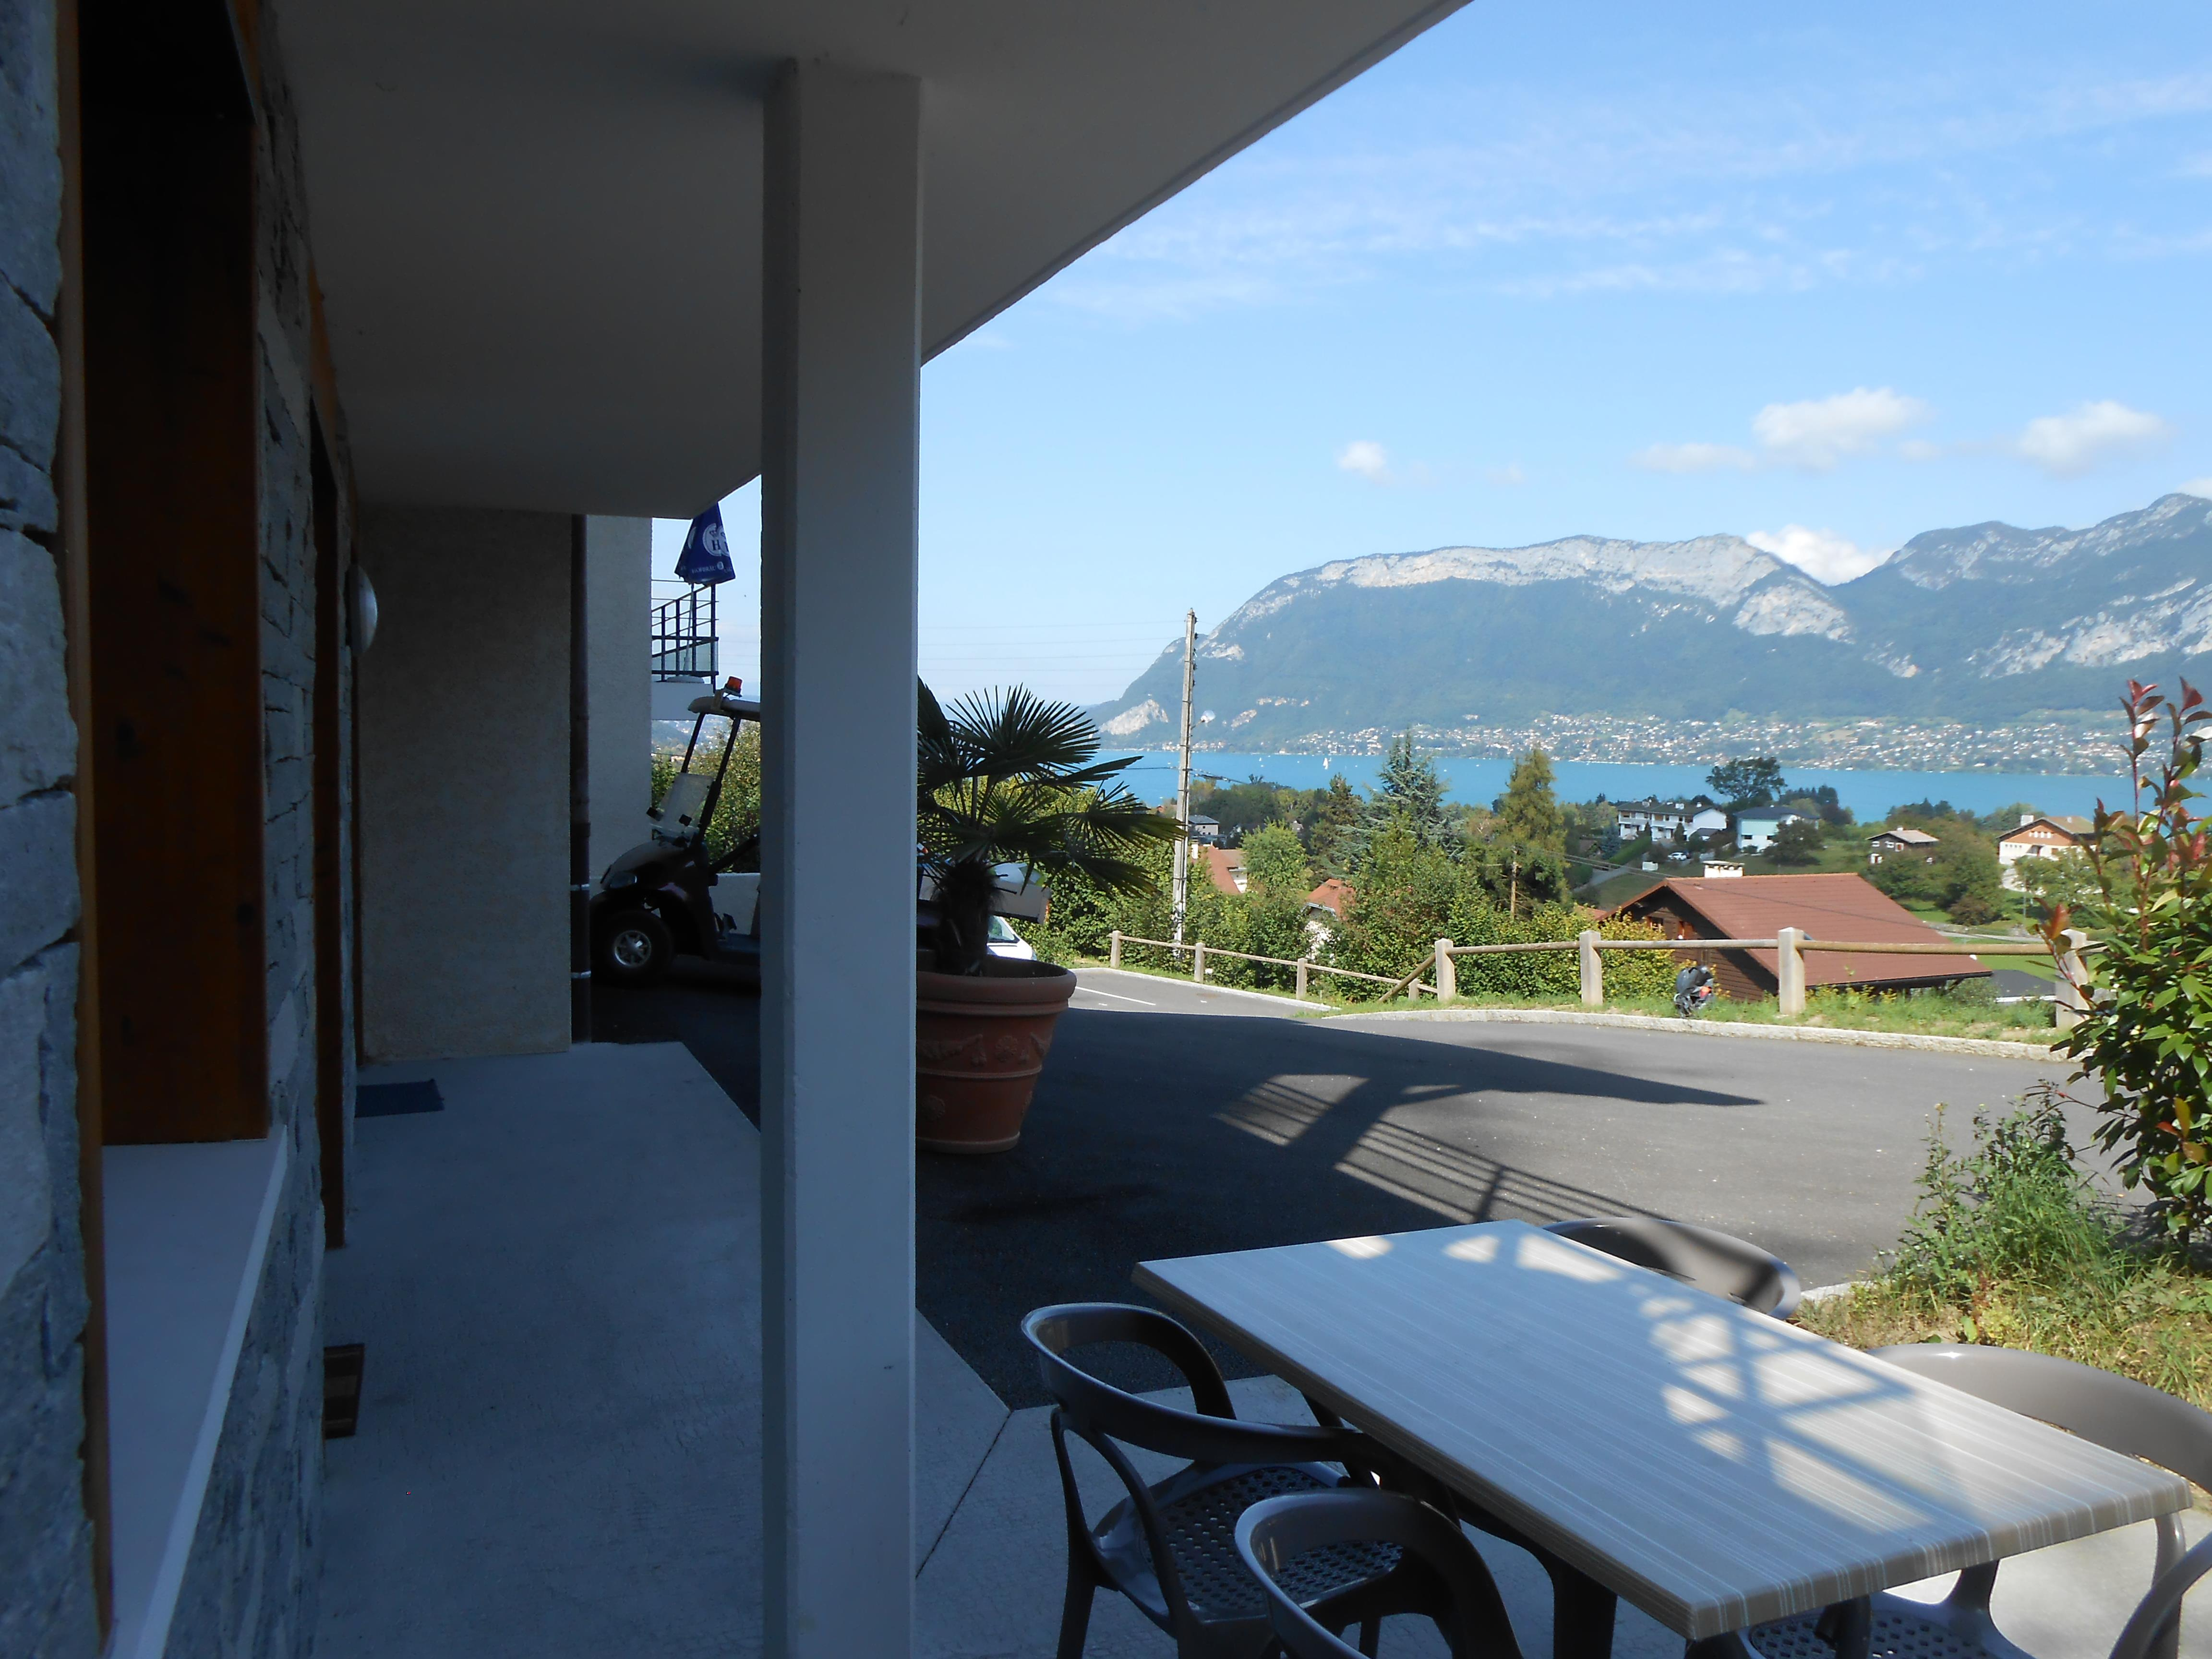 Location - Appartement 38M² Vue Lac - 2 Chambres (Plain Pied) - Camping Le Panoramic